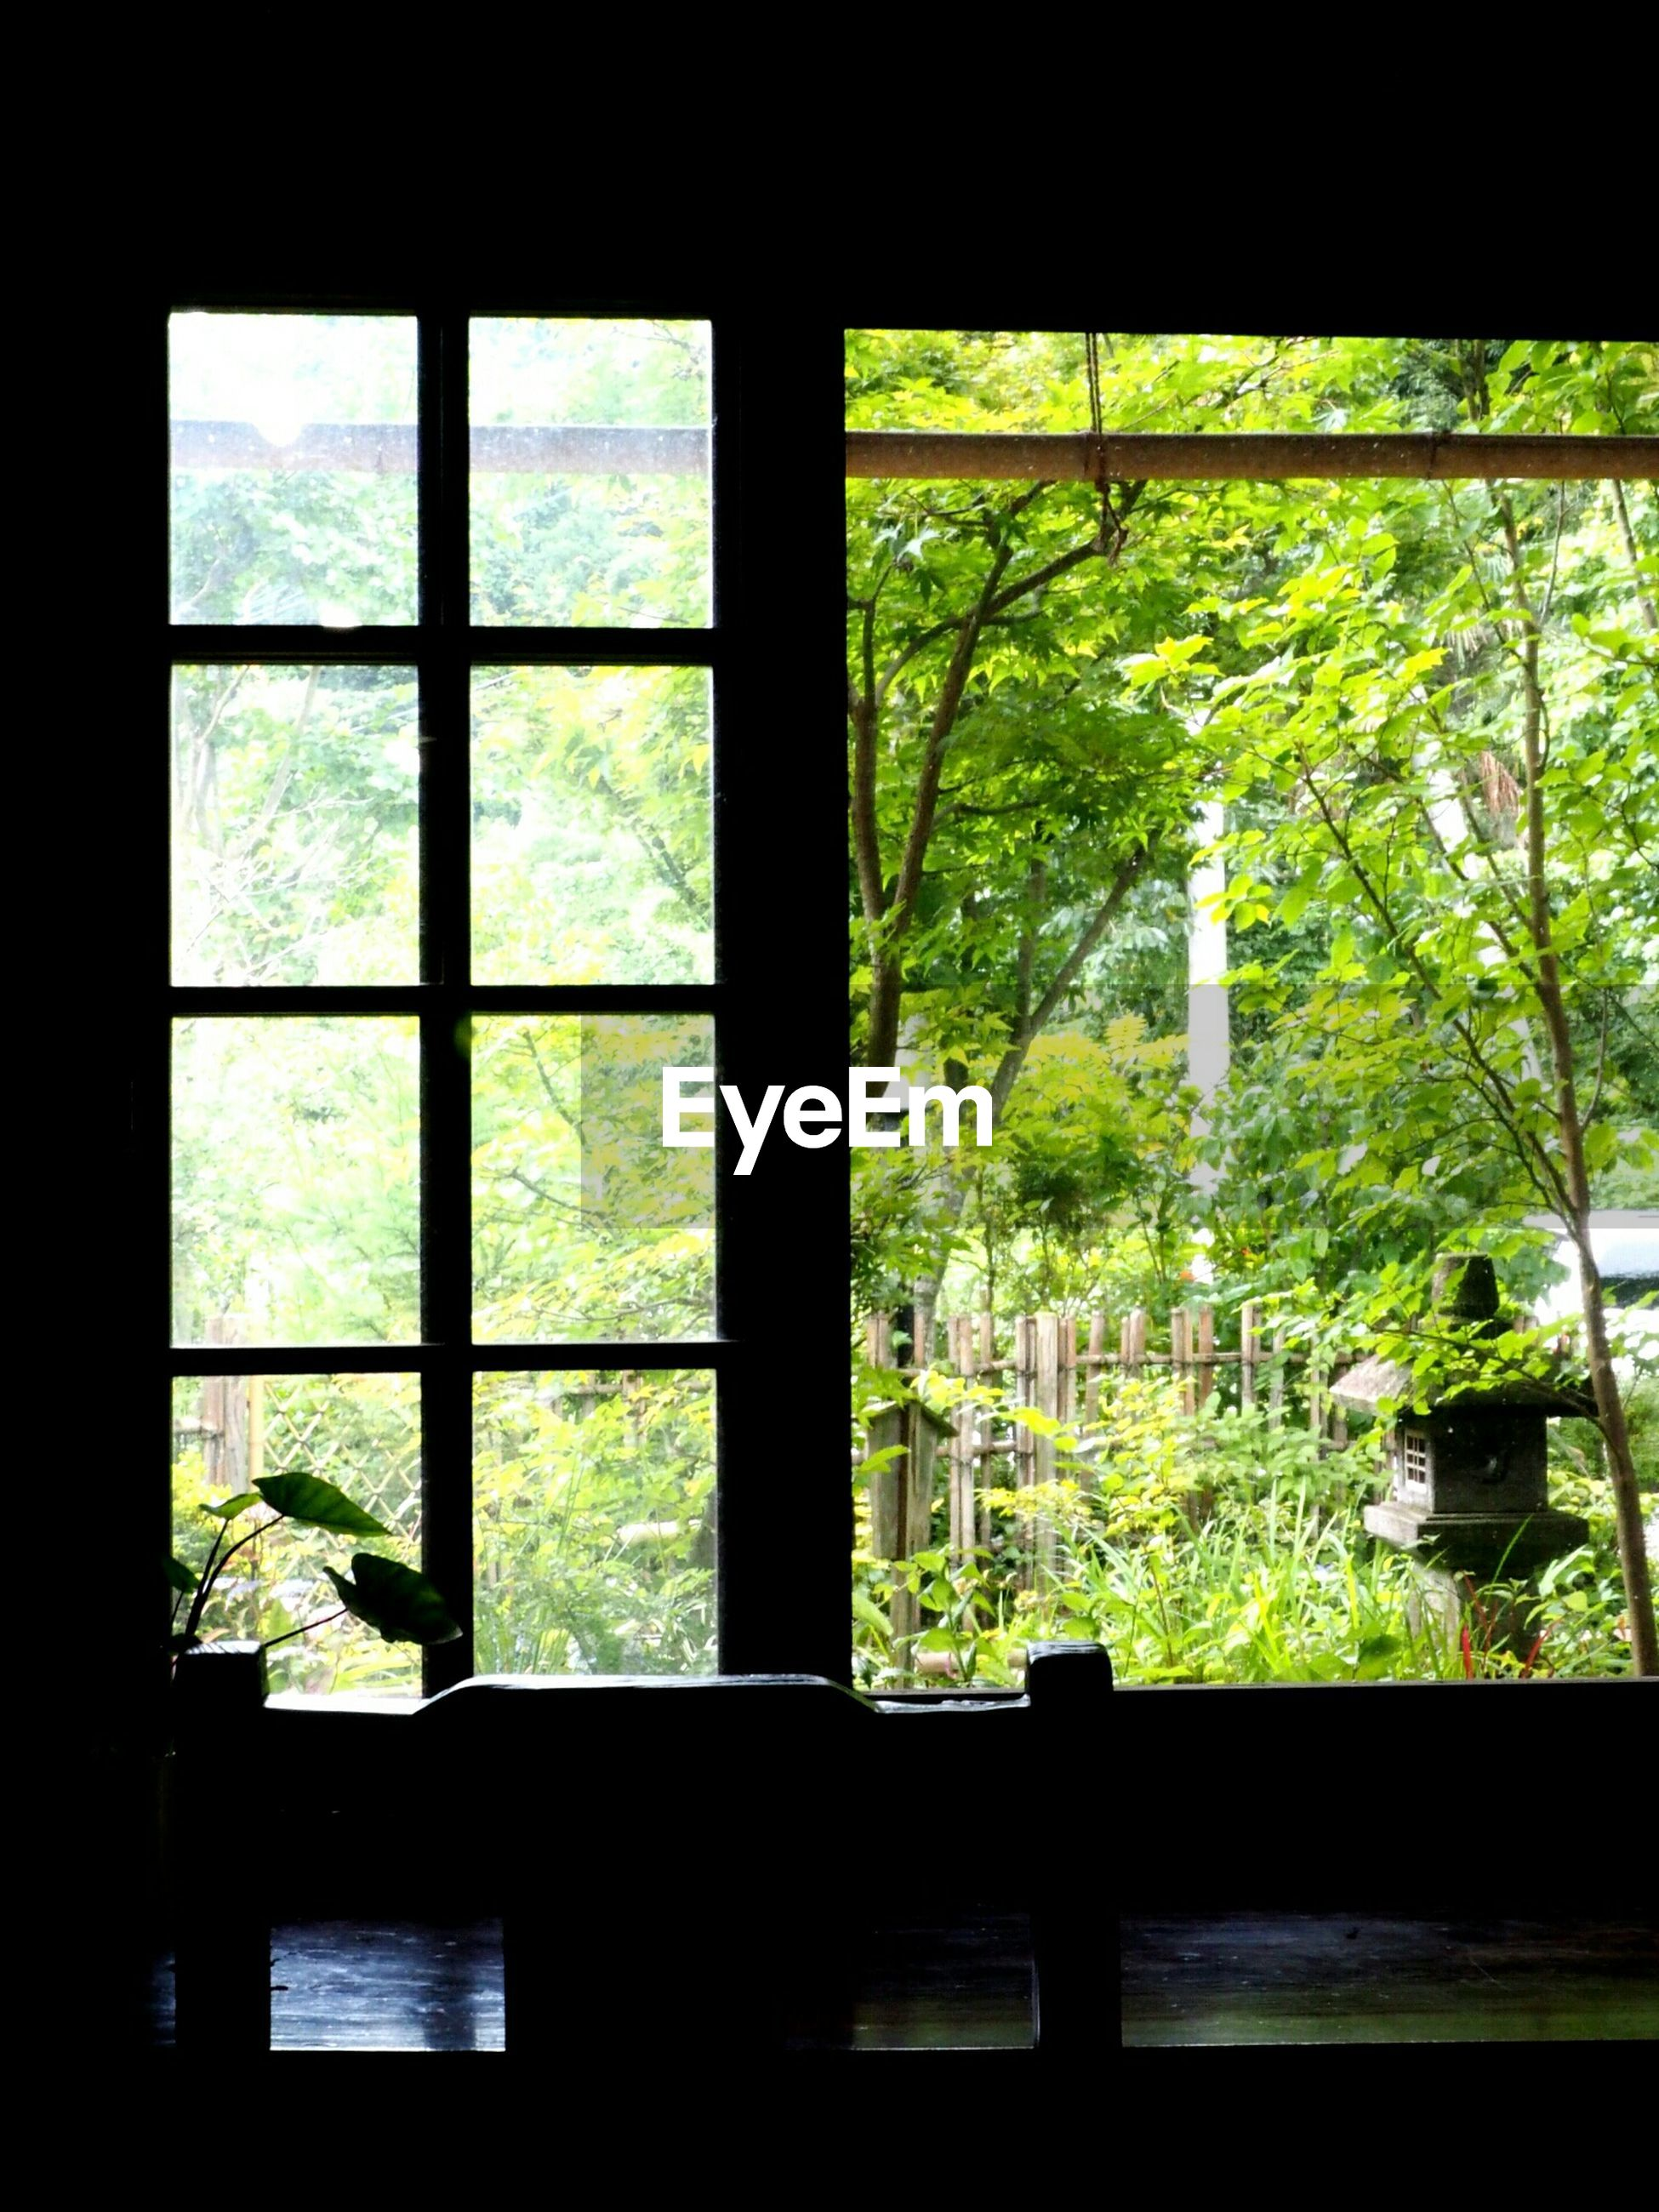 window, indoors, tree, transparent, glass - material, looking through window, growth, home interior, window sill, glass, sunlight, day, plant, house, built structure, dark, nature, curtain, no people, window frame